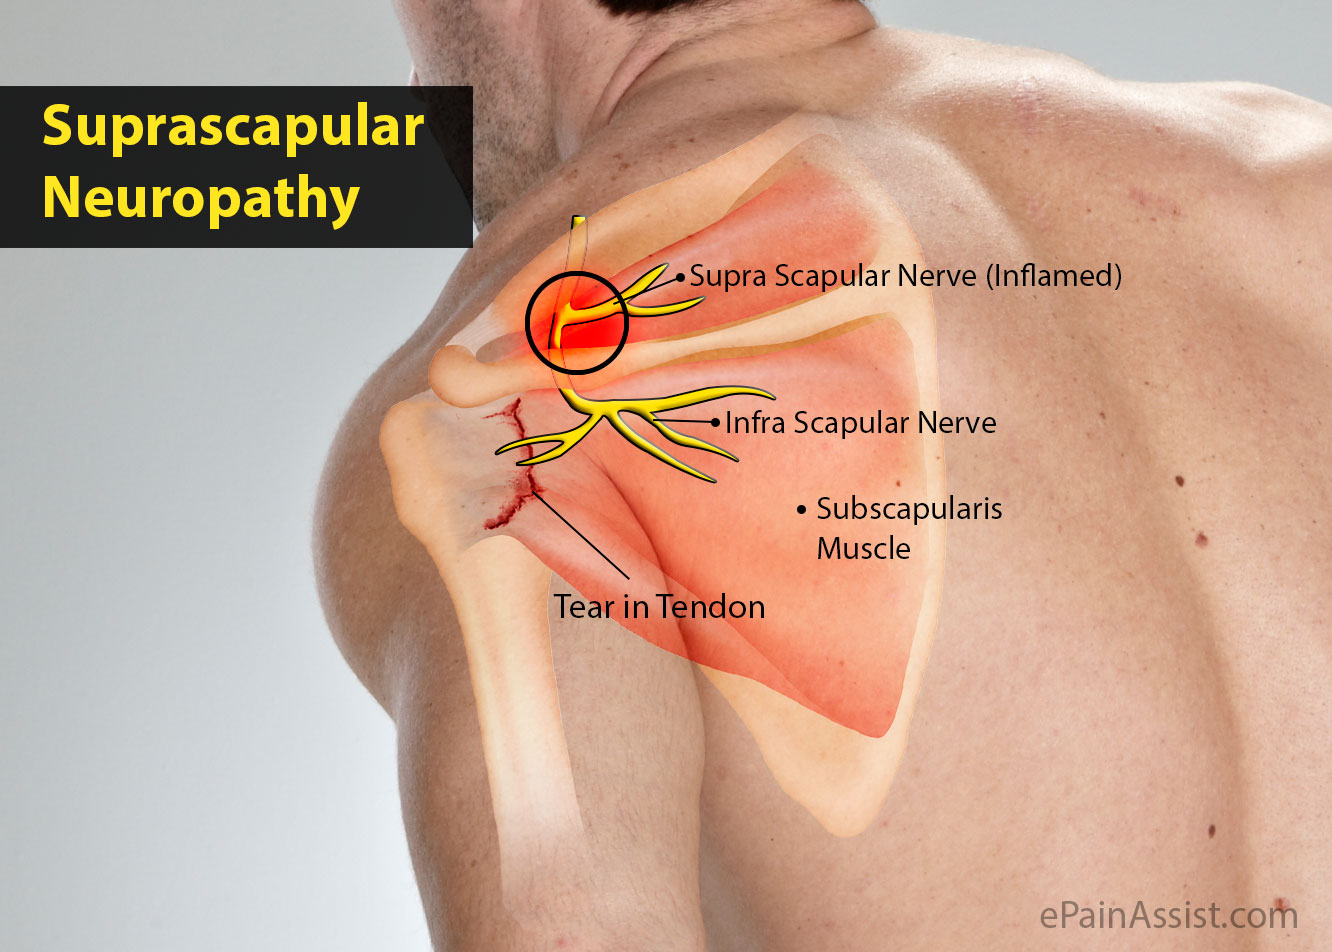 Suprascapular Neuropathy Definition Treatment Causes Symptoms